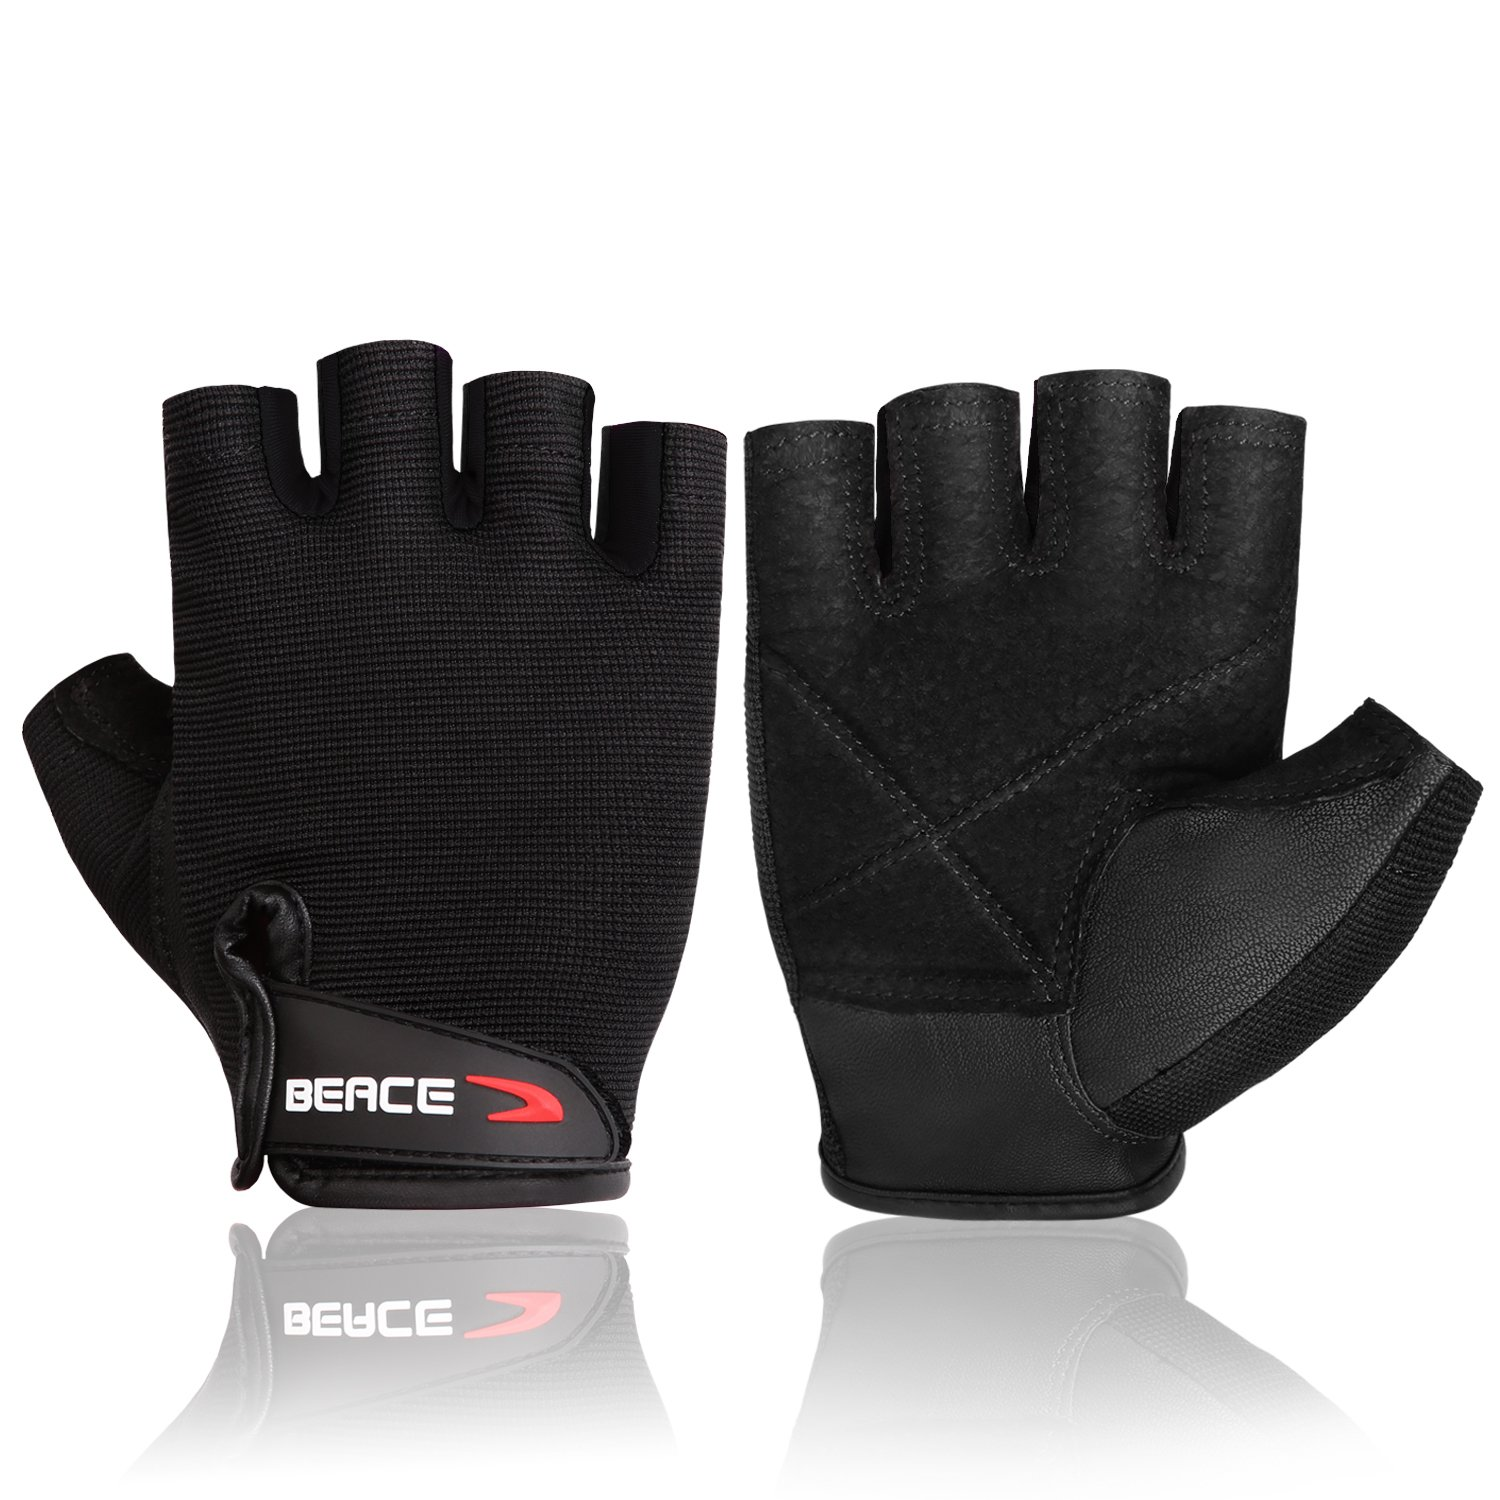 BEACE Weight Lifting Gym Gloves with Anti-Slip Leather Palm for Workout Exercise Training Fitness and Bodybuilding for Men & Women by BEACE